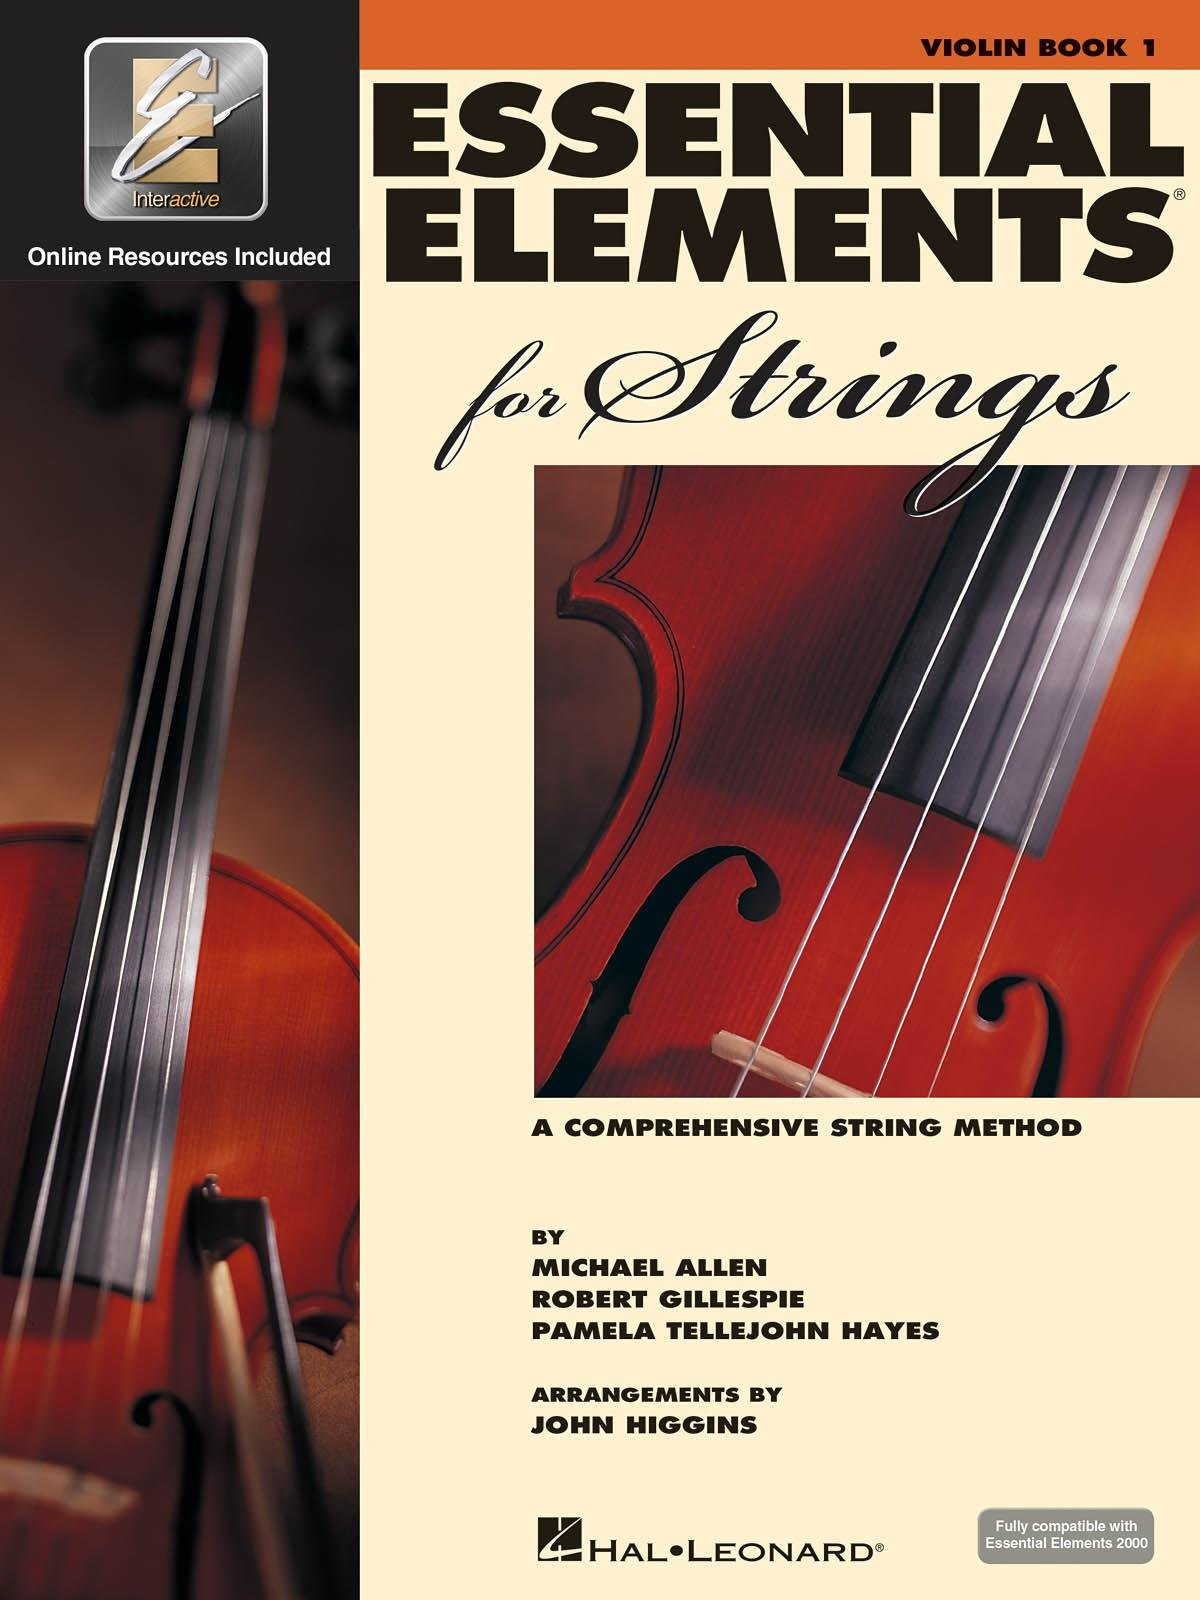 Essential Elements for Strings Violin Book One A Comprehensive String Method- Online Resurces Included